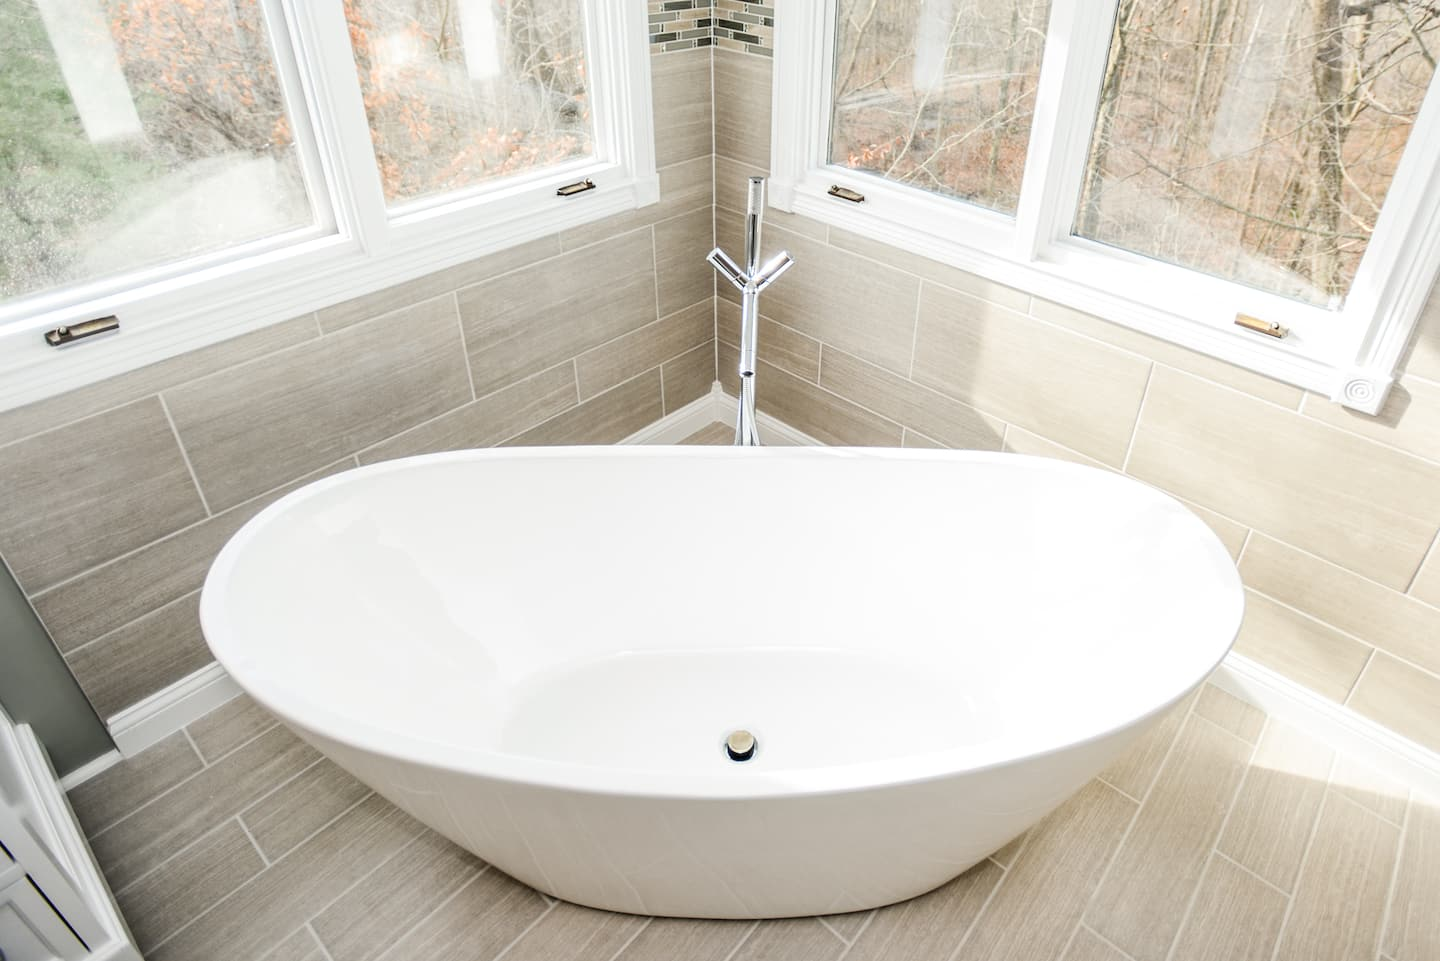 s nyc bath rustoleum services refinishing kit bathroom instructions paint resurface bathtub fiberglass chic pictures dan tiles beautiful reviews reglazing repainting tub